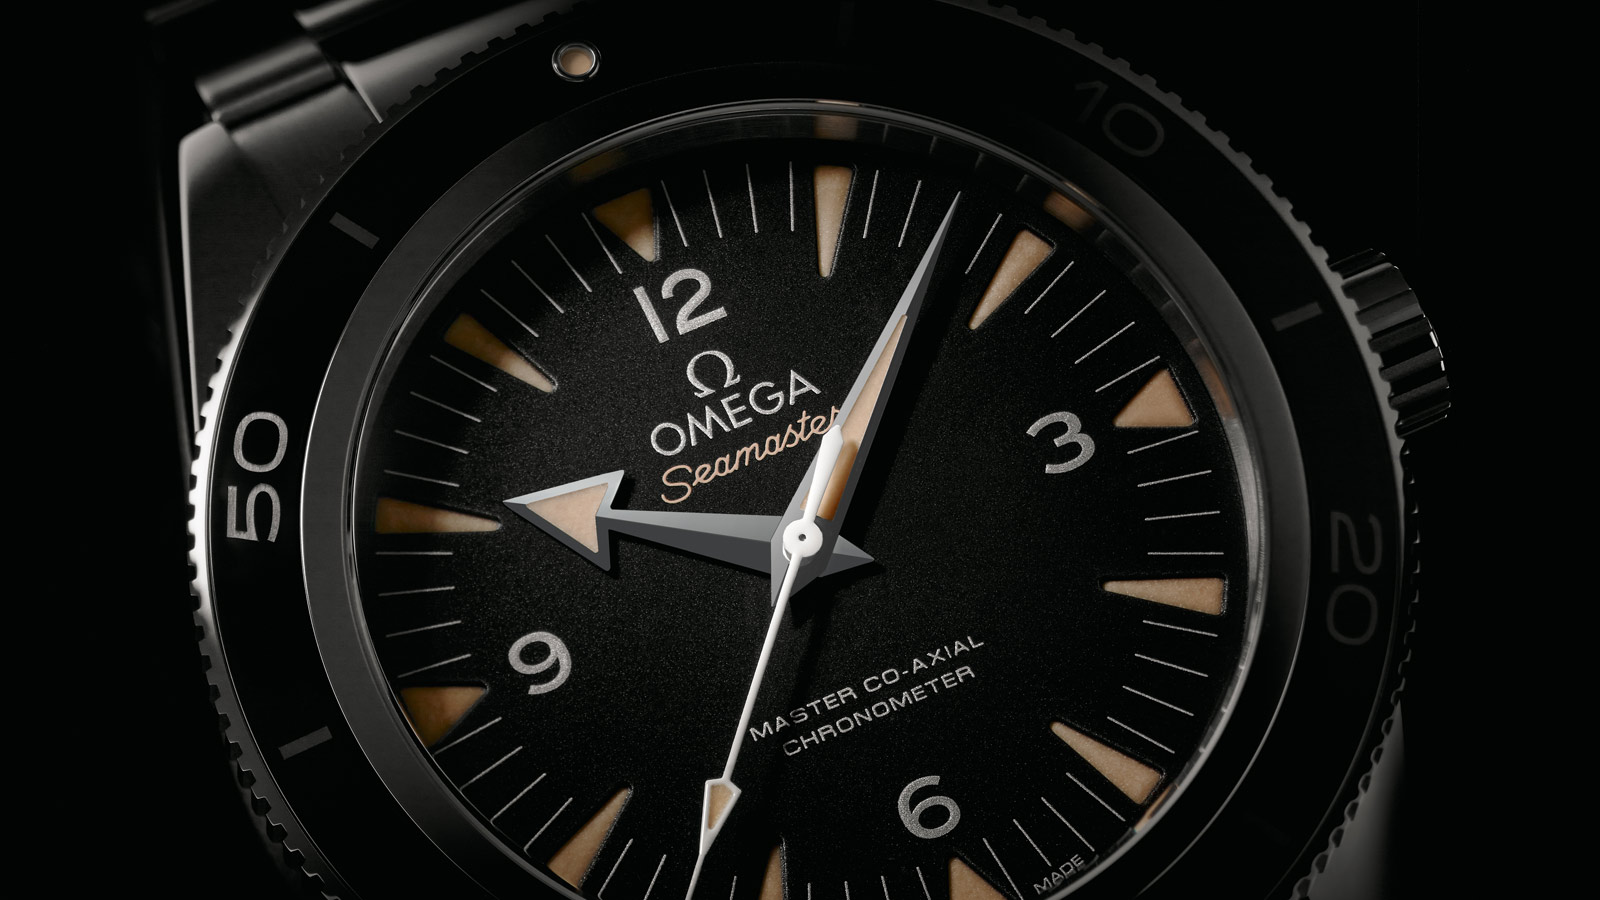 Seamaster Seamaster 300 Seamaster 300 Omega Master Co‑Axial 41 mm - 233.30.41.21.01.001 - Visualizzare 2